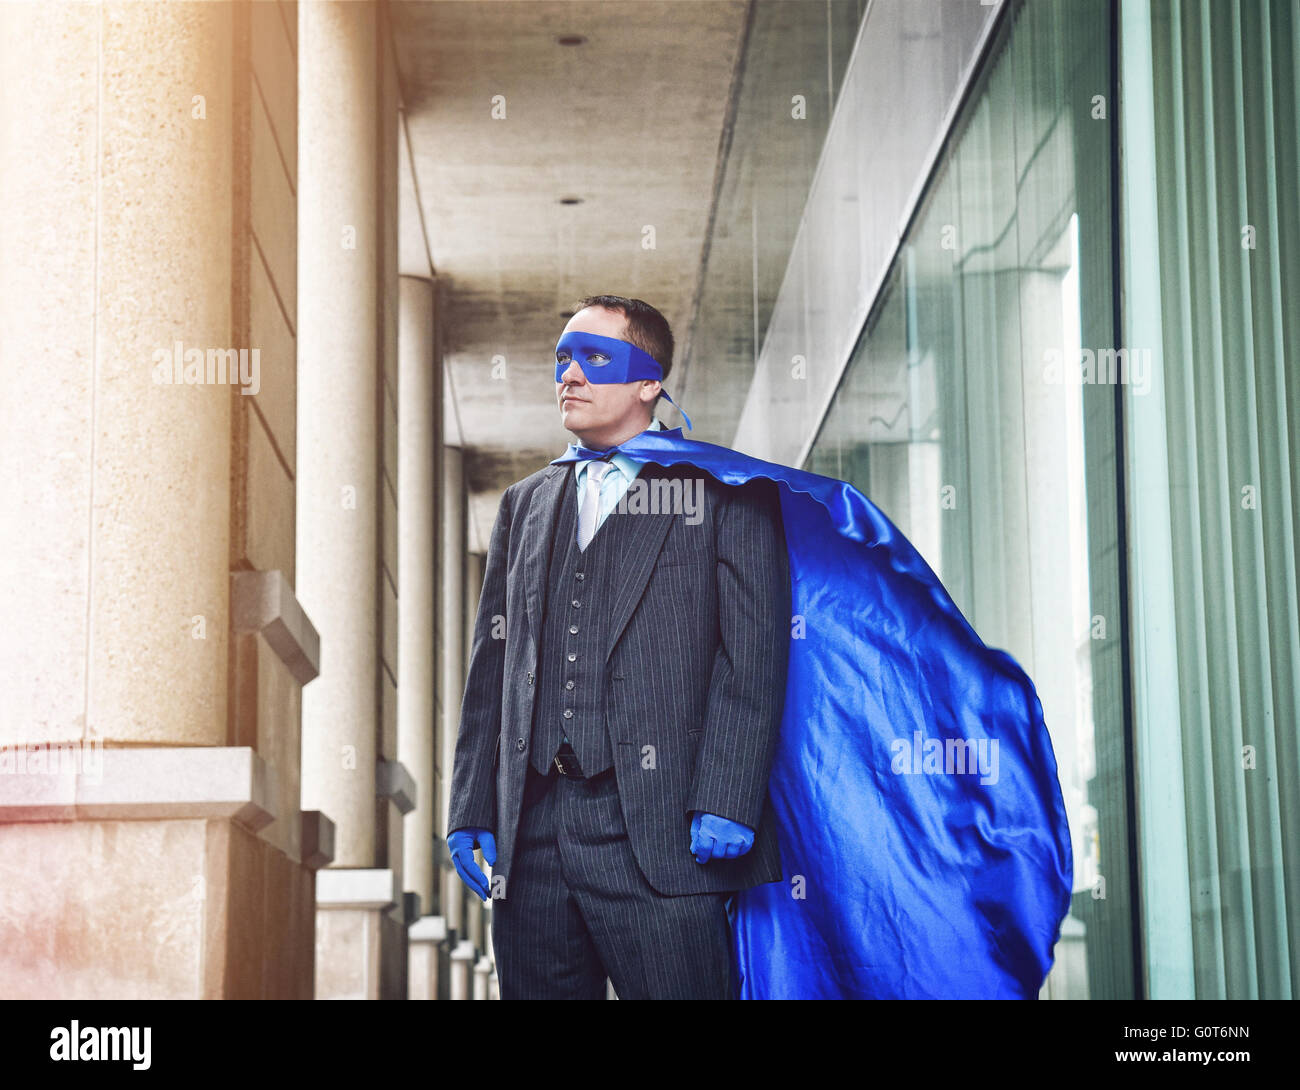 A super business man is wearing a blue cape confident in the city for a success, entrepreneur or inspiration concept. - Stock Image